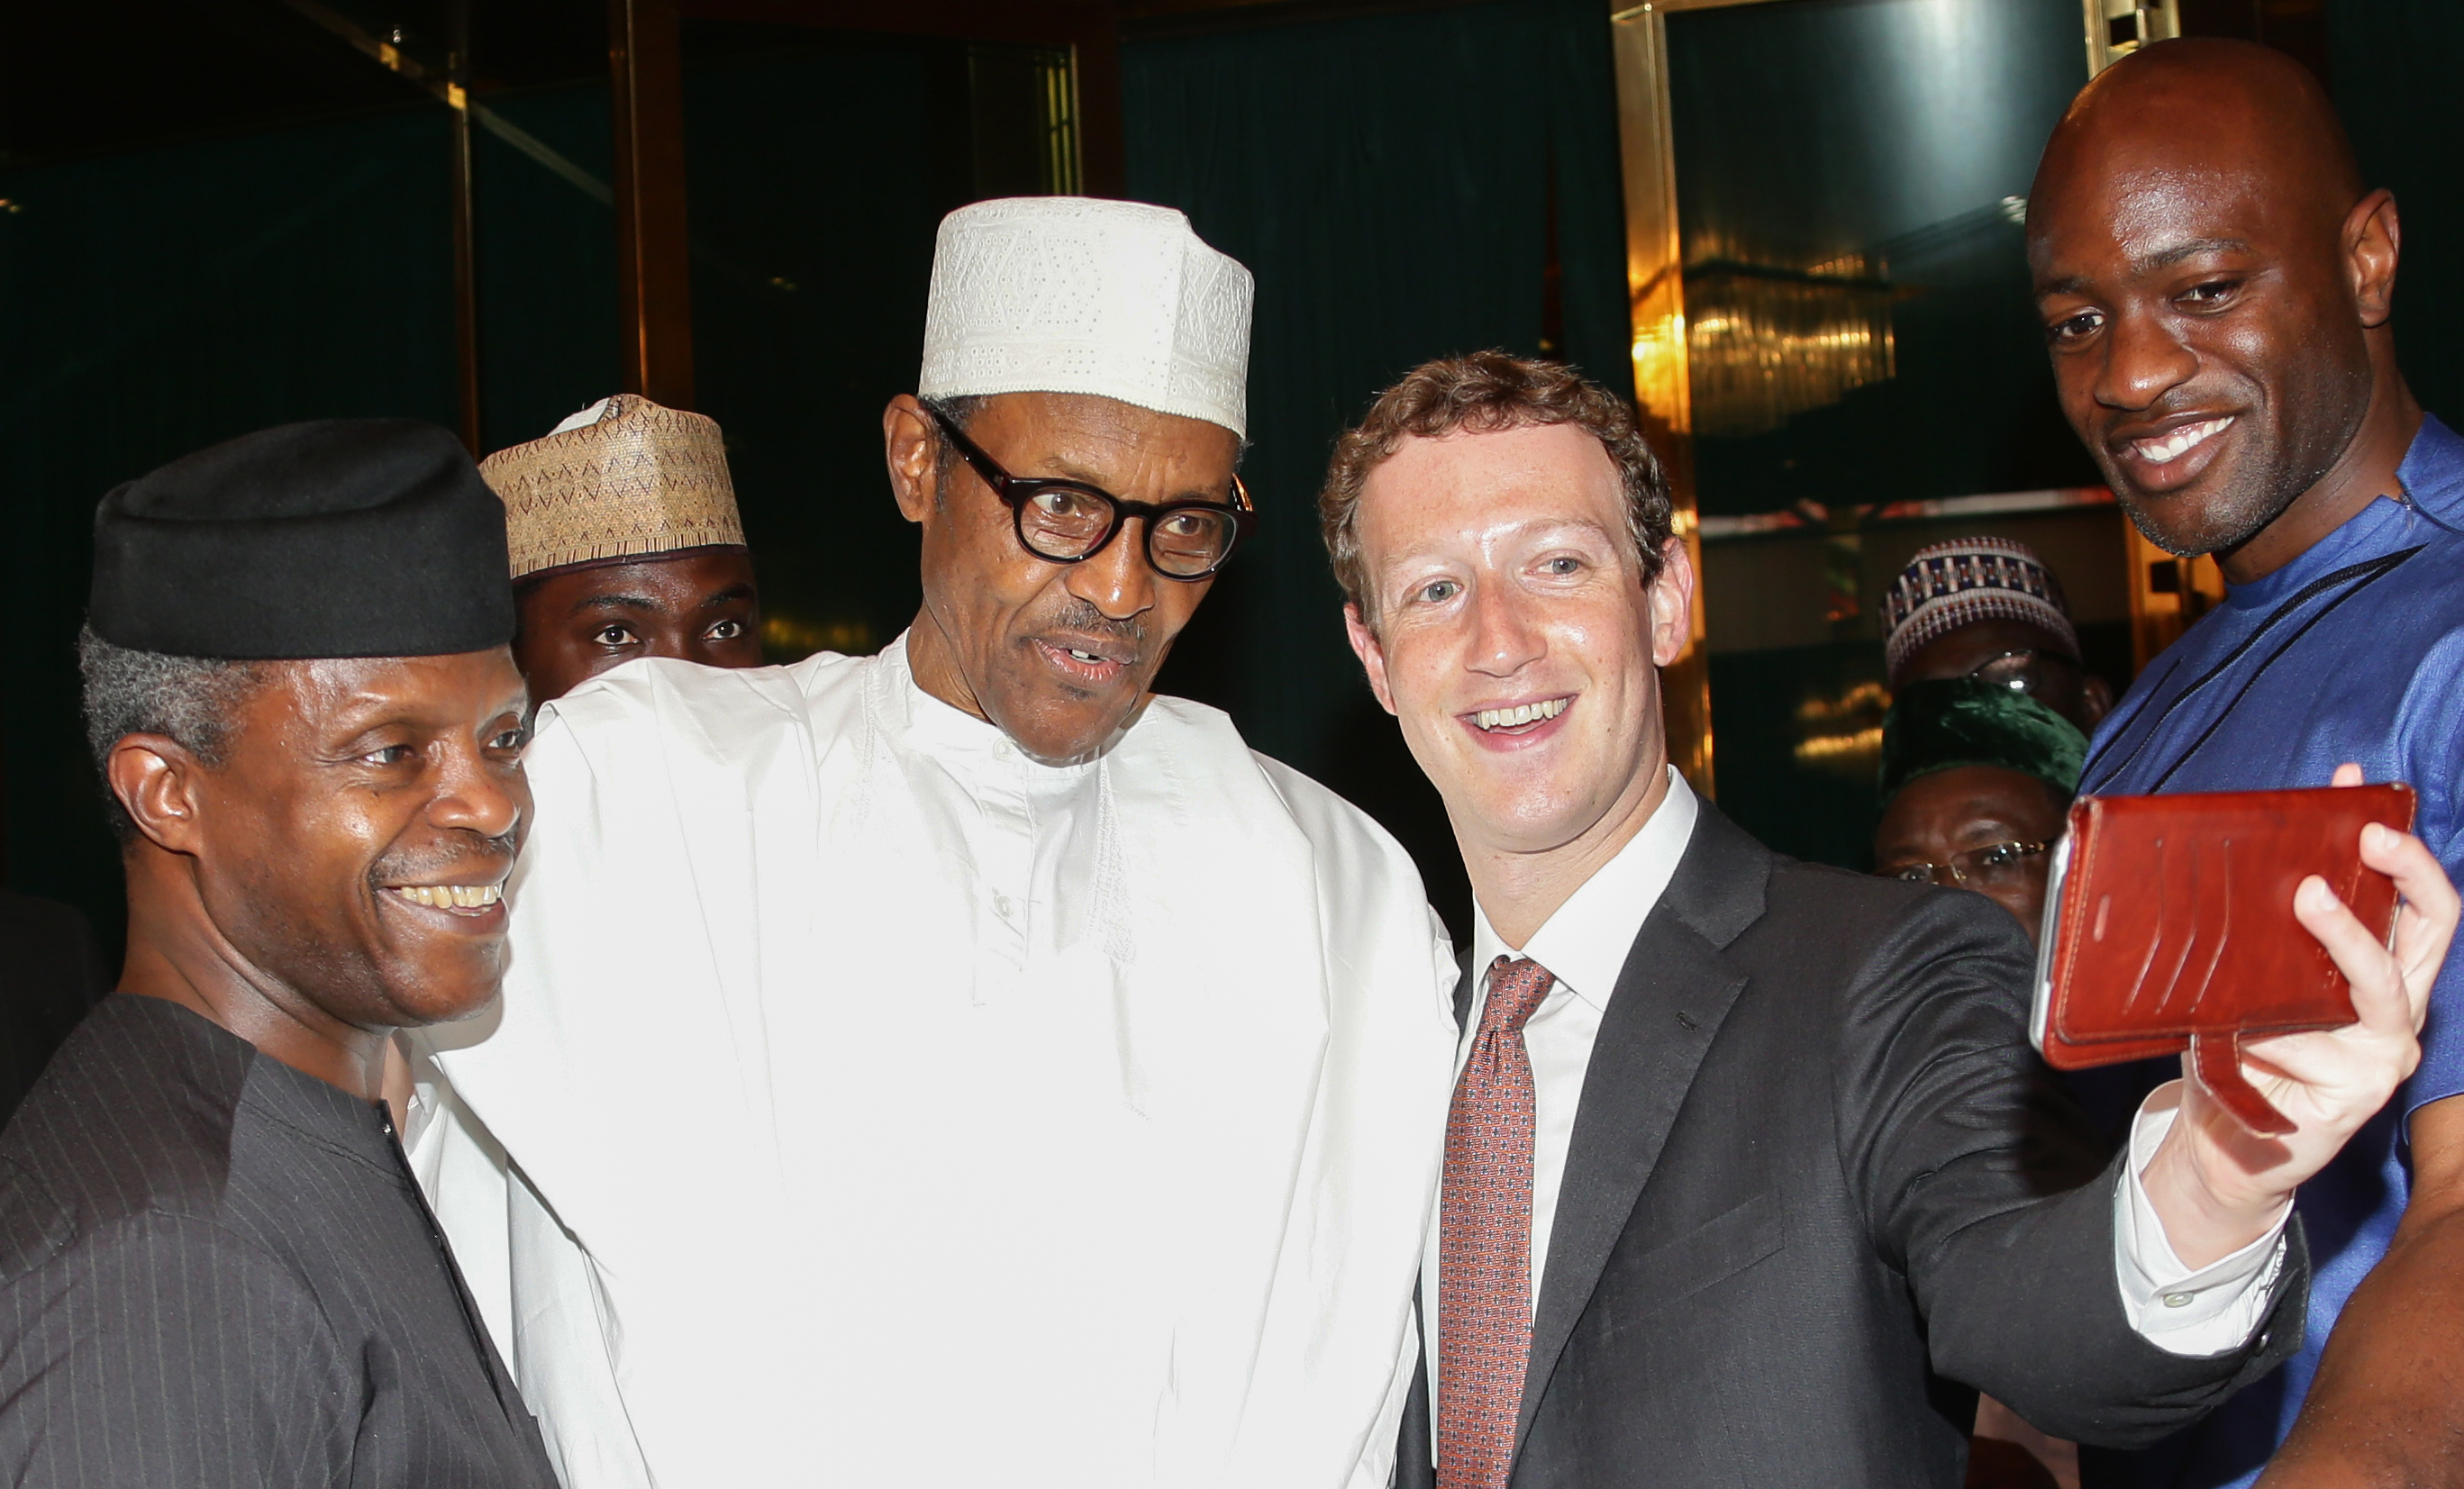 vice.com - The Nigerian Government Is Destroying the Country's Growing Tech Sector, Experts Warn - VICE